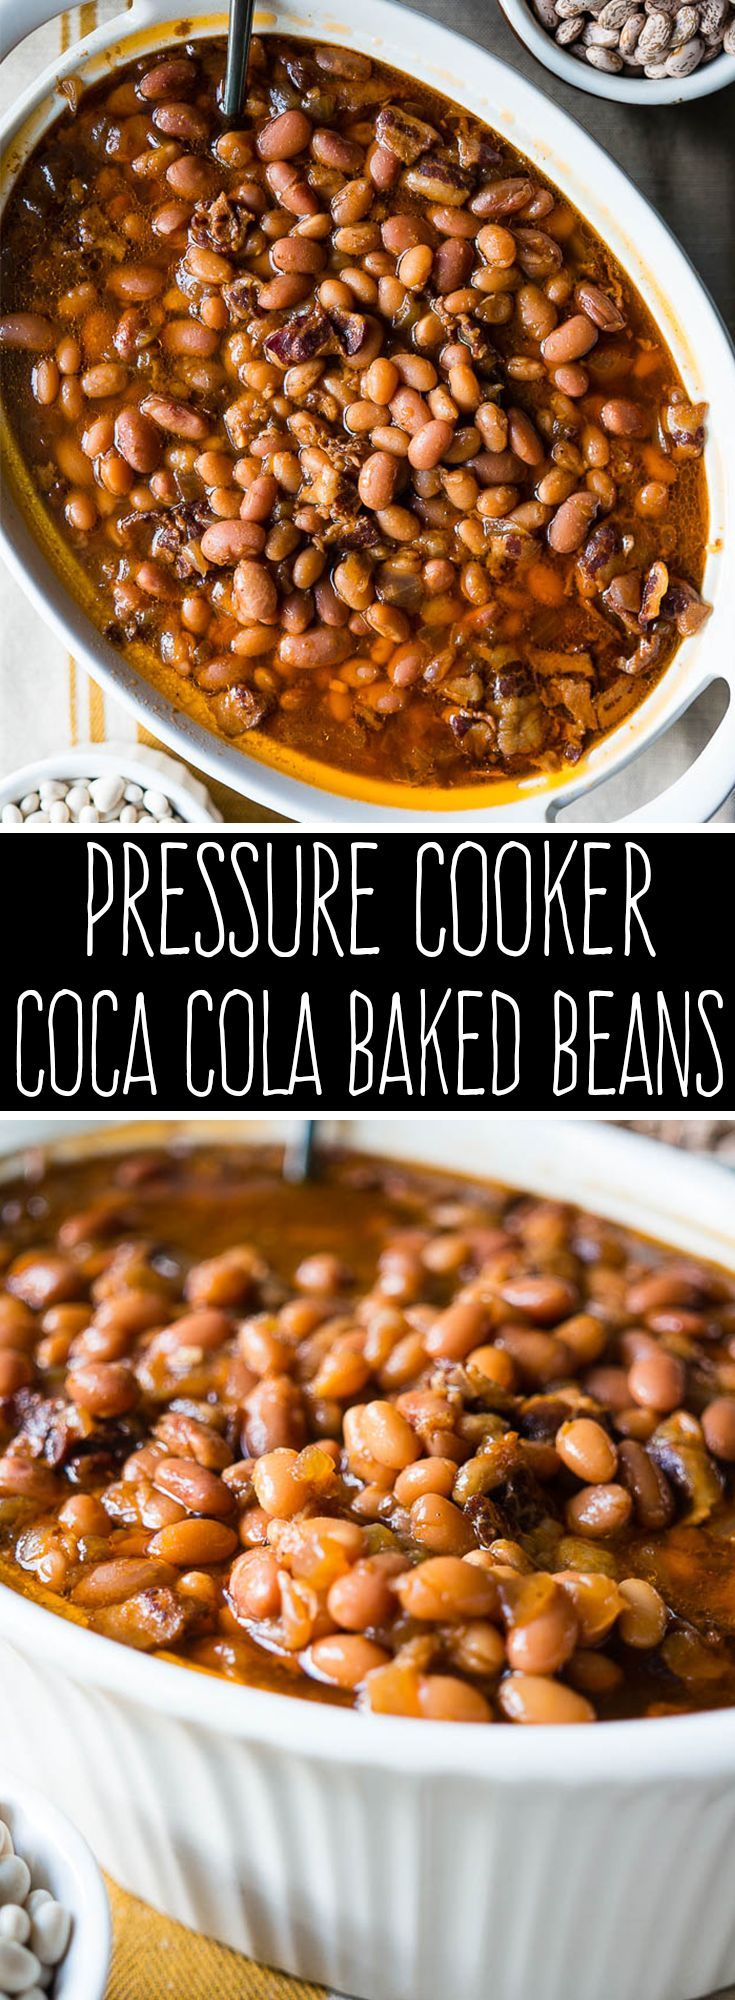 Pressure Cooker Coca Cola Baked Beans. Made in a big batch with dried beans, these tasty baked beans are sweet, tangy, savory, and hearty!